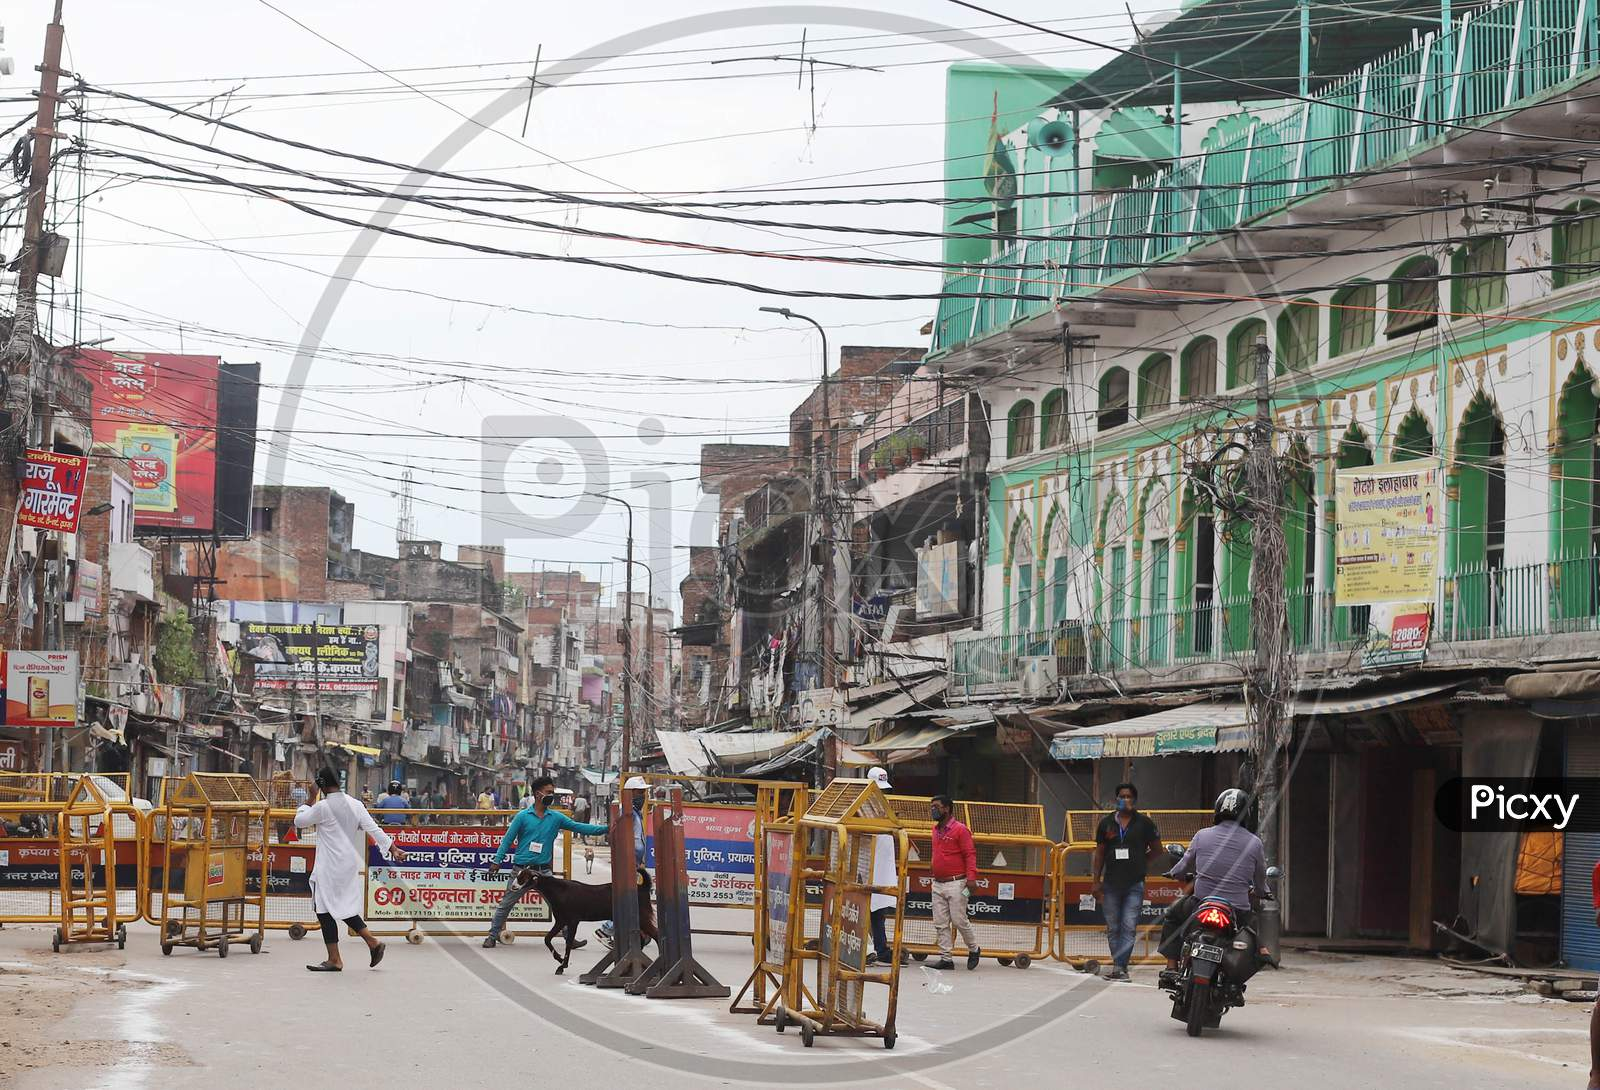 A view of closed Jama Masjid on the occasion of Eid Al- Adha during the outbreak of the coronavirus disease (COVID-19) in Prayagraj, August 1, 2020.